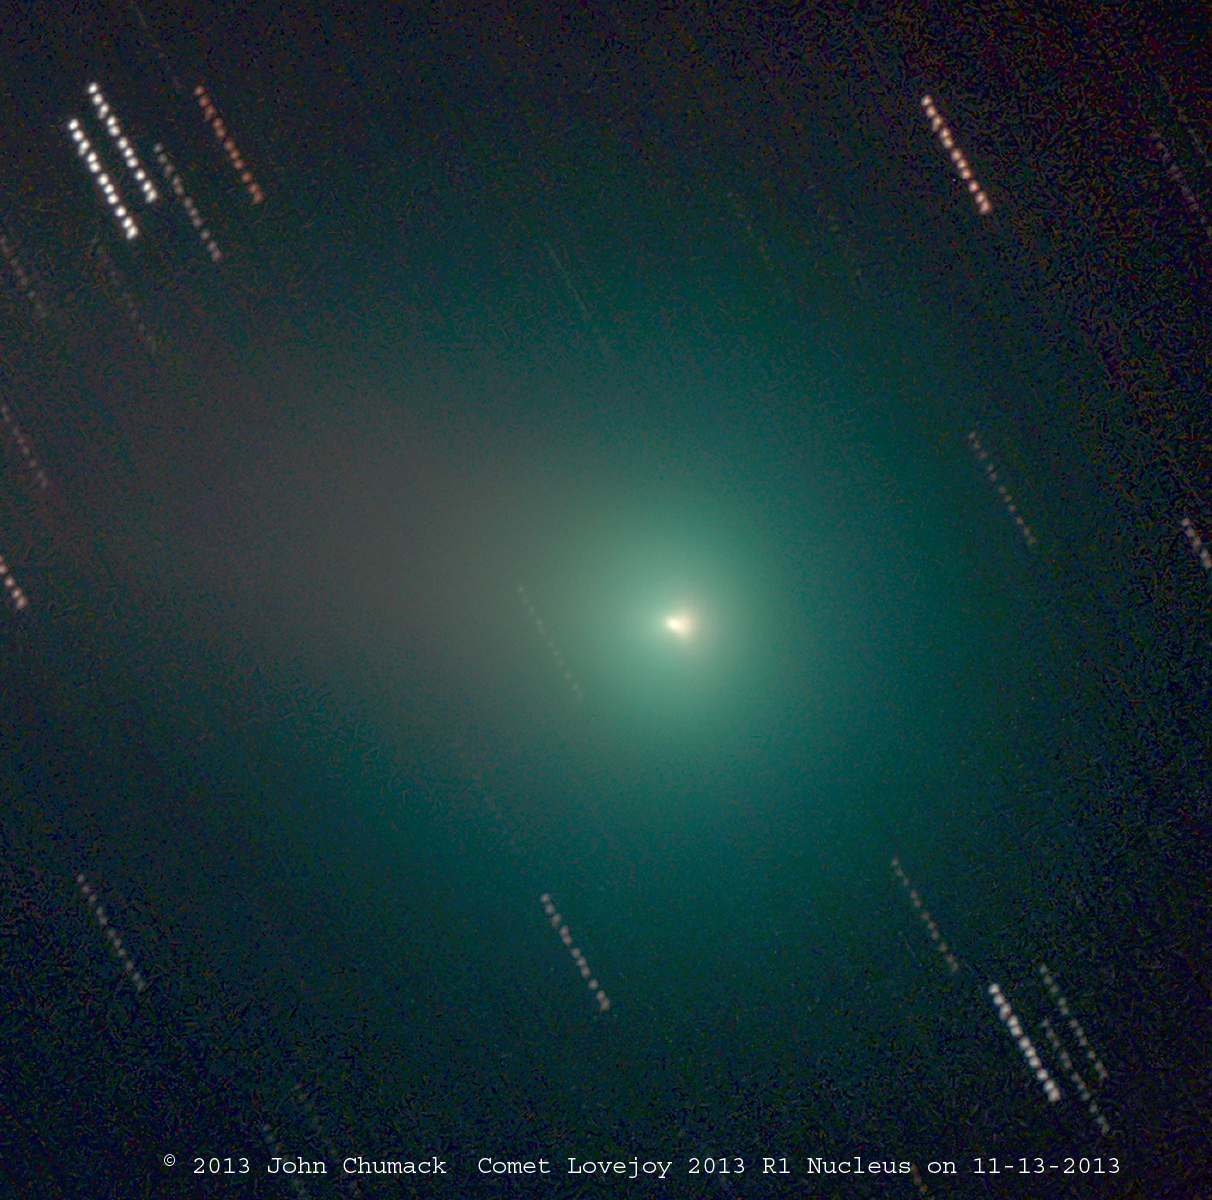 Comet Lovejoy Streaks Across Night Sky in Spectacular Amateur Photos